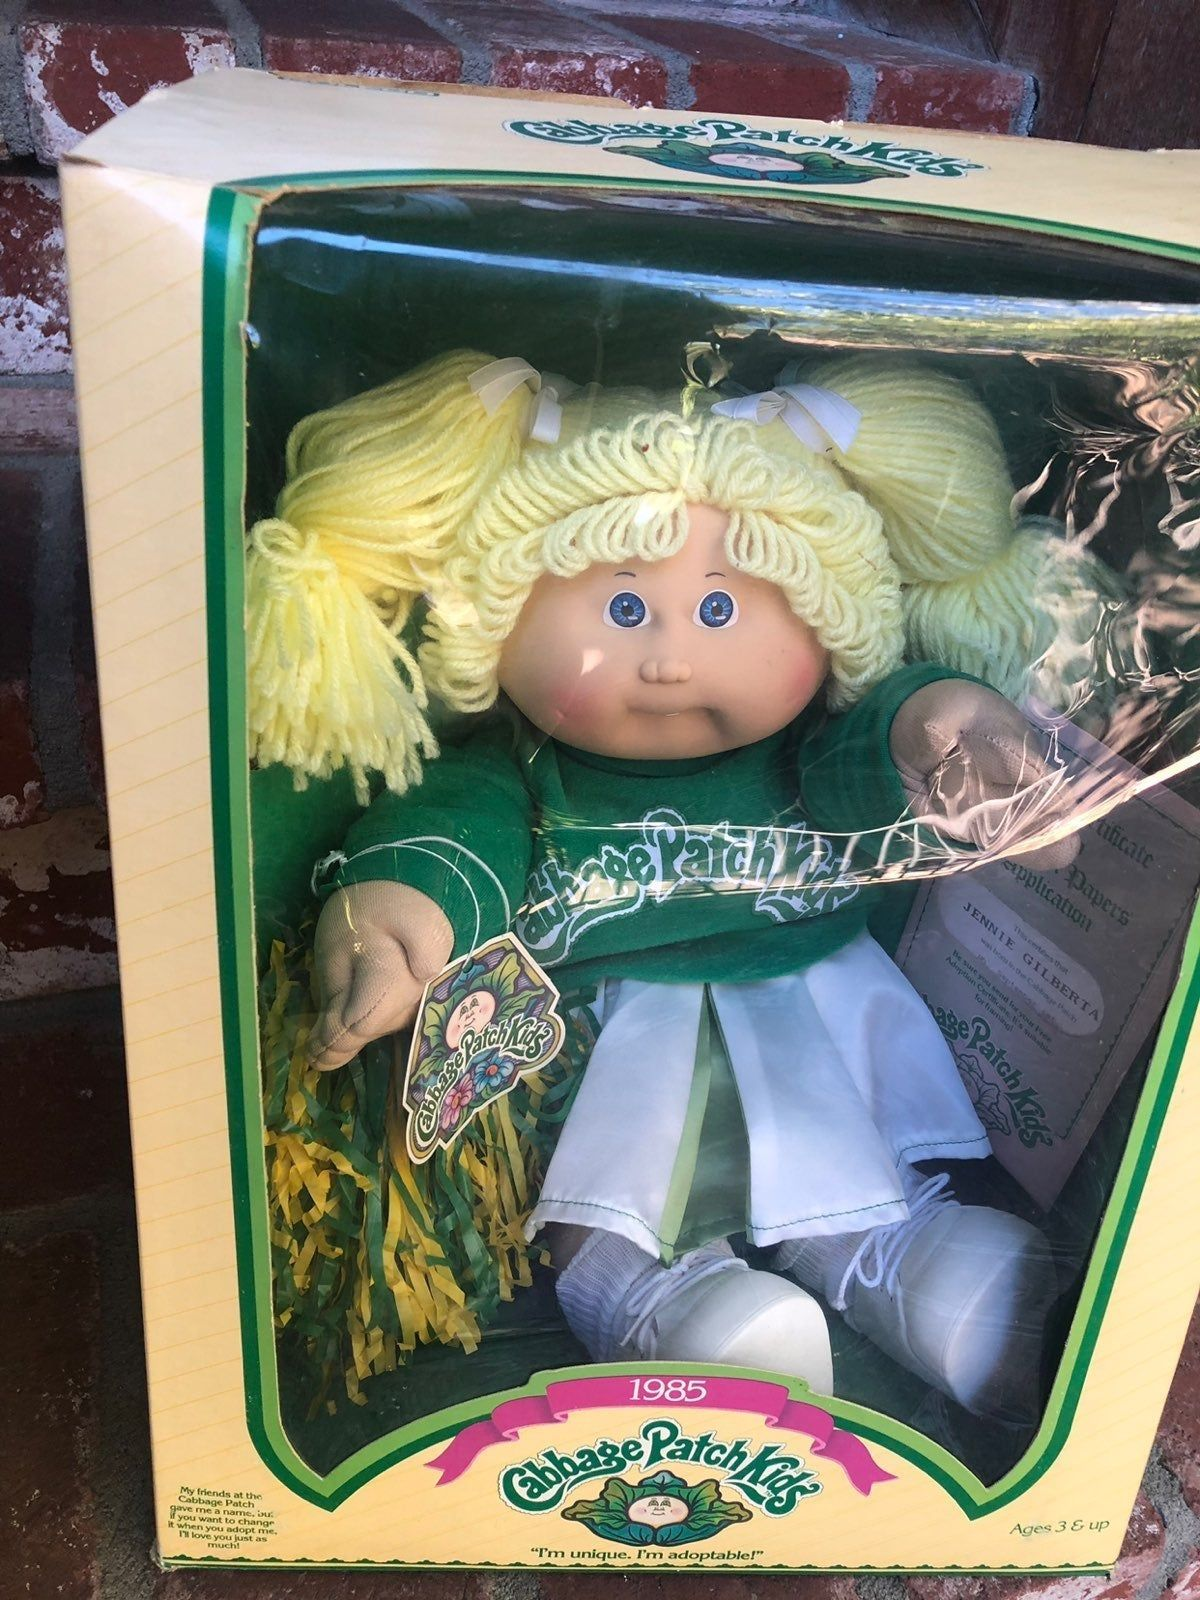 Vintage Adorable Cheerleader Cabbage Patch Doll In Its Original Box With Certificate It Vintage Cabbage Patch Dolls Cabbage Patch Dolls Cabbage Patch Babies